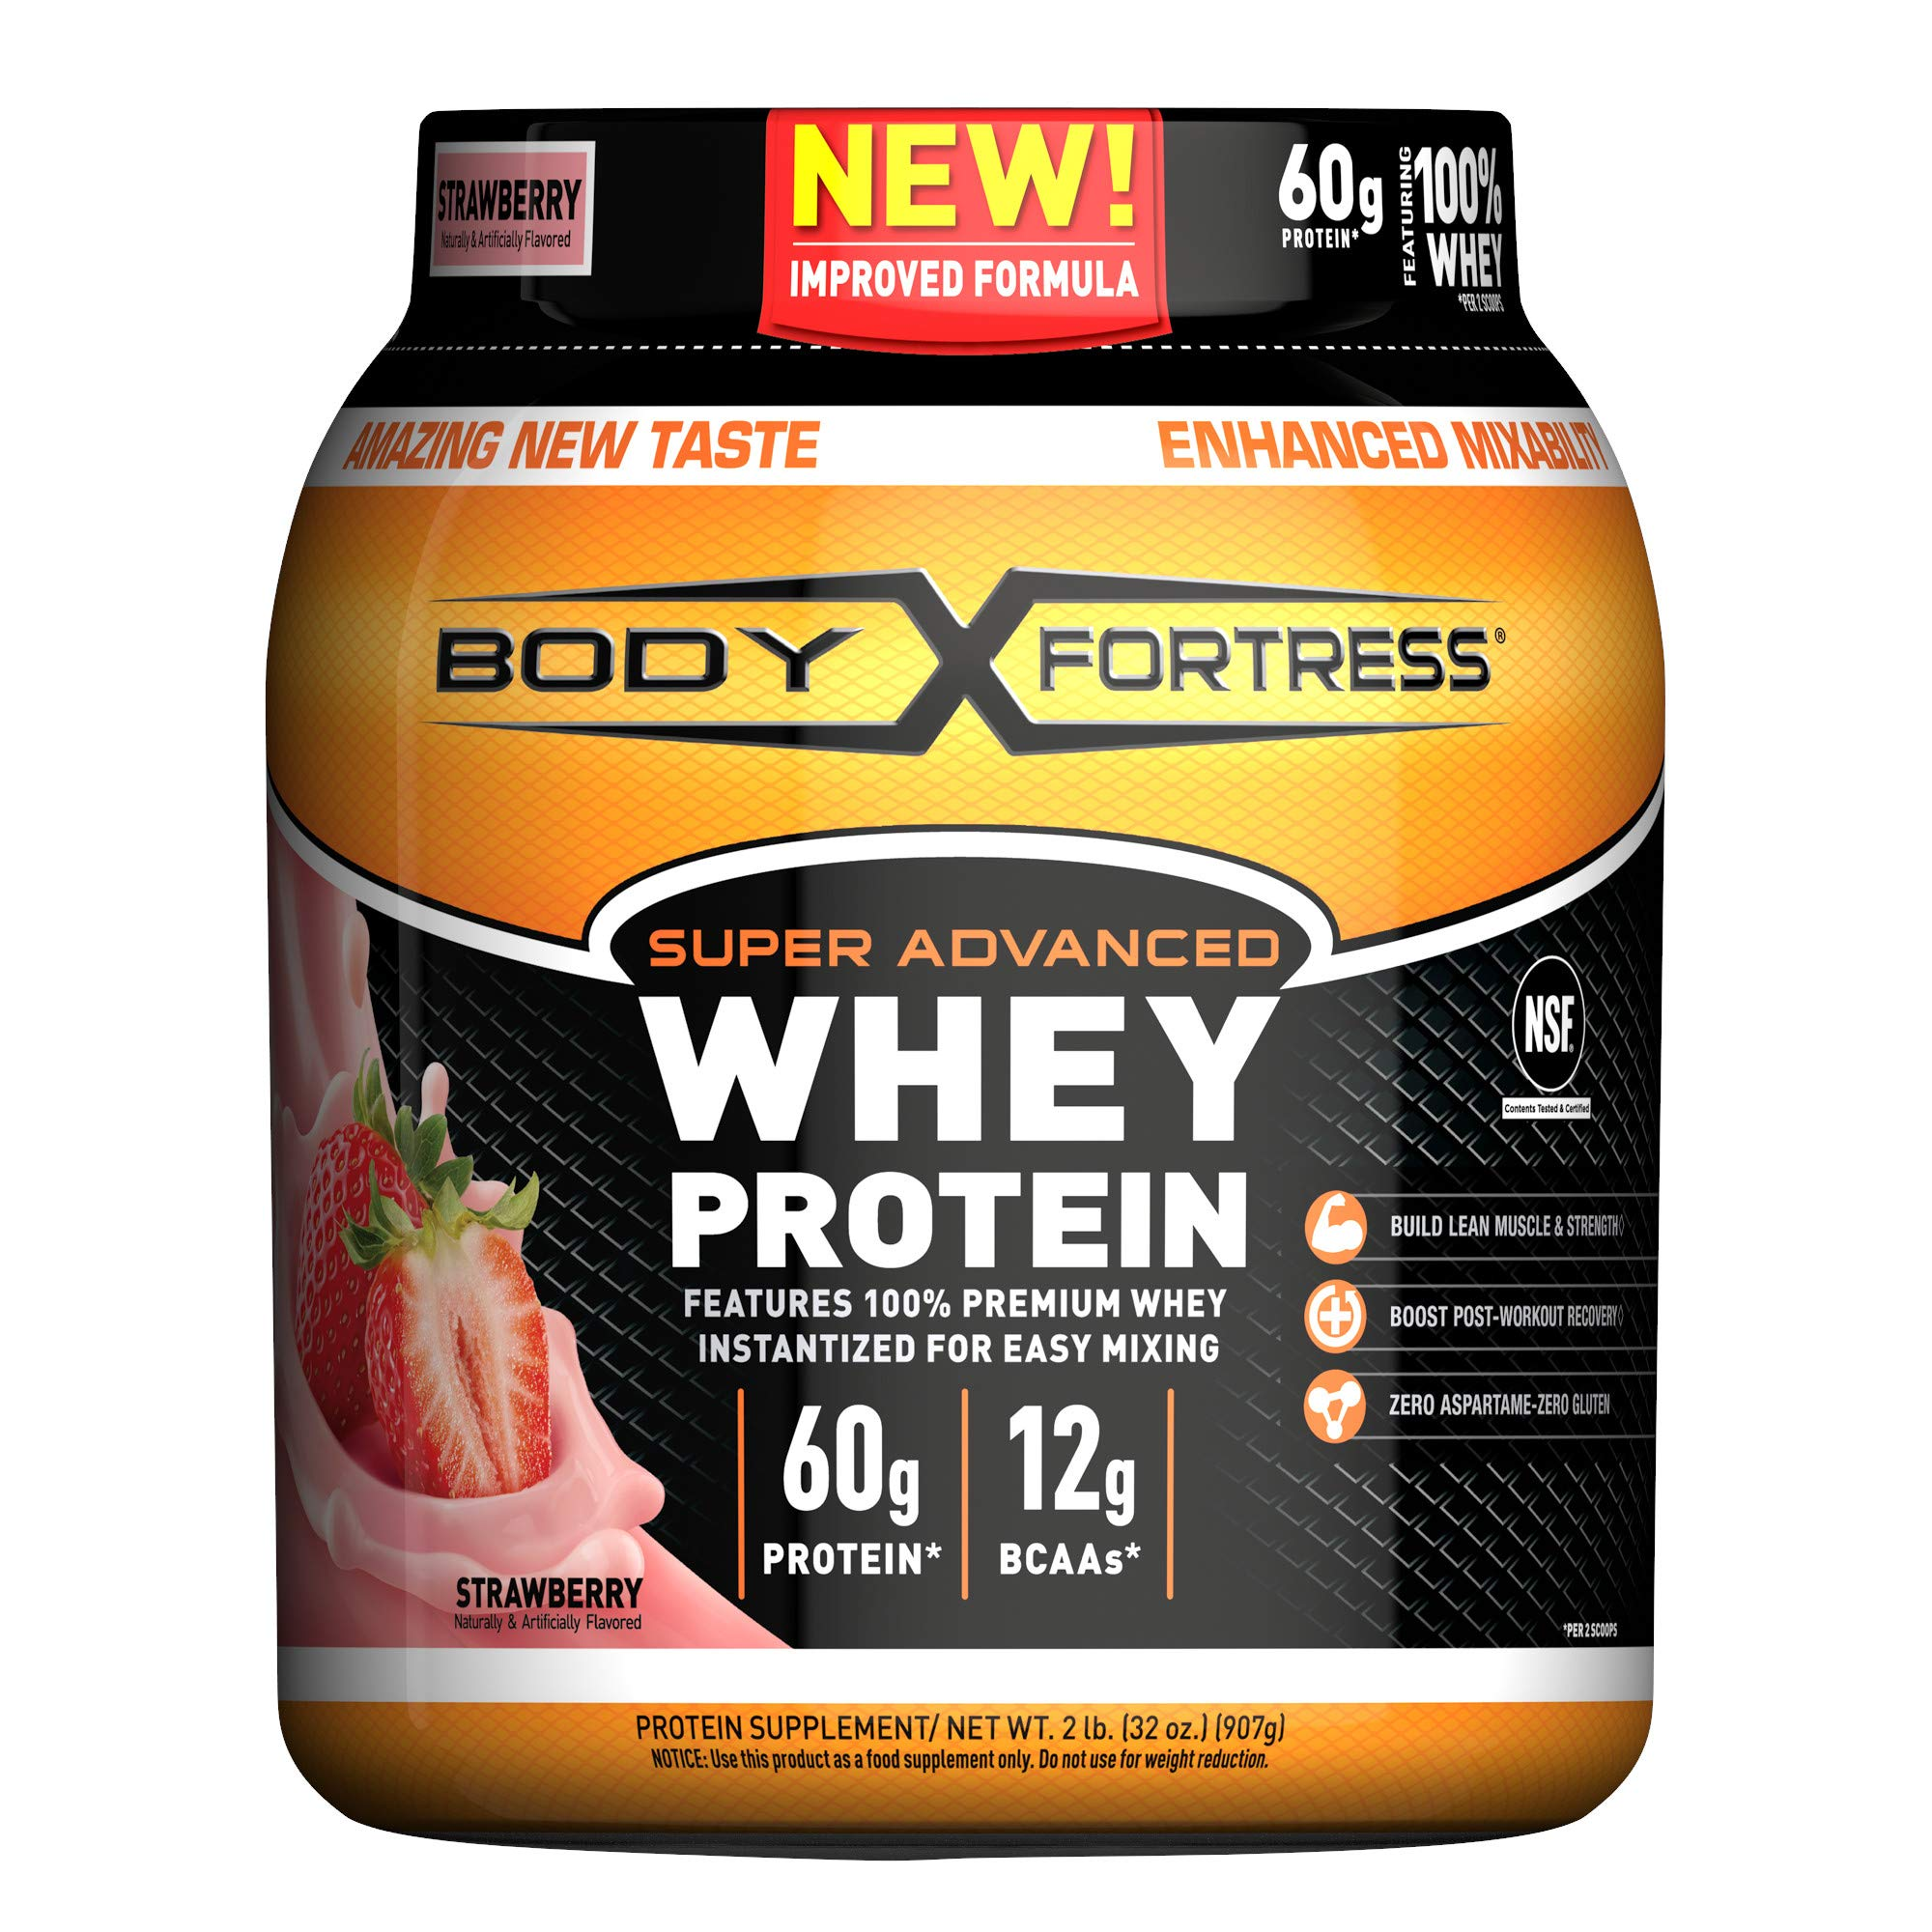 Body Fortress Super Advanced Whey Protein Powder, Gluten Free, Strawberry, 2 Pound (Packaging May Vary) by Body Fortress